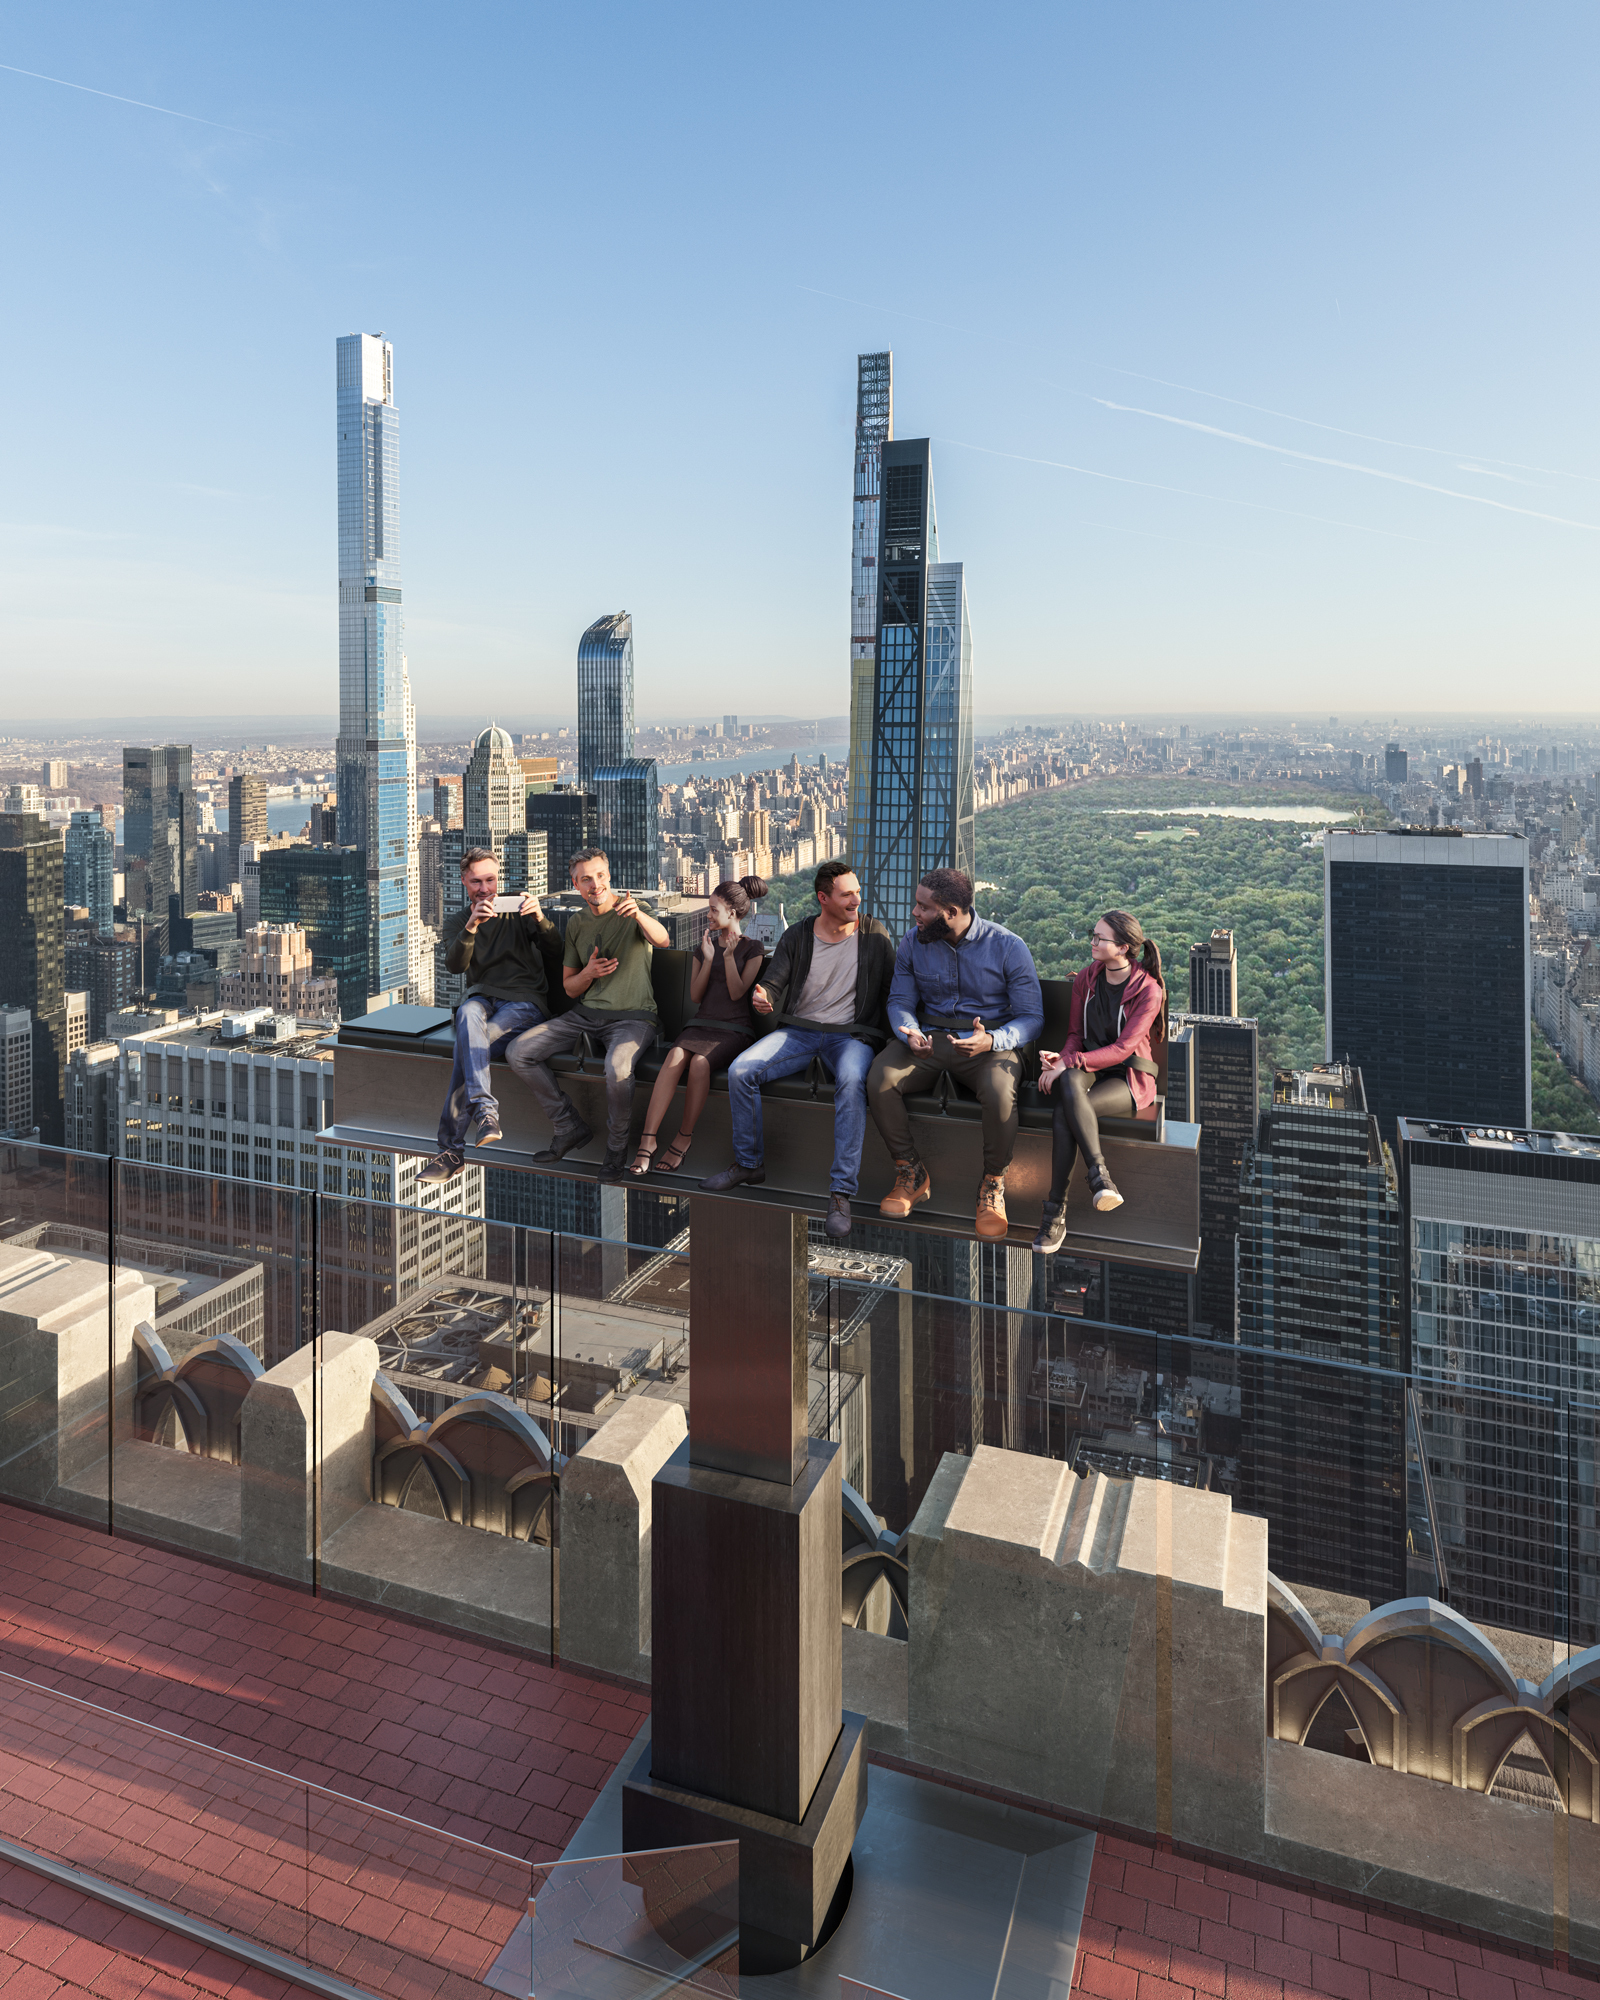 A thrilling new ride could be coming to the Top of the Rock